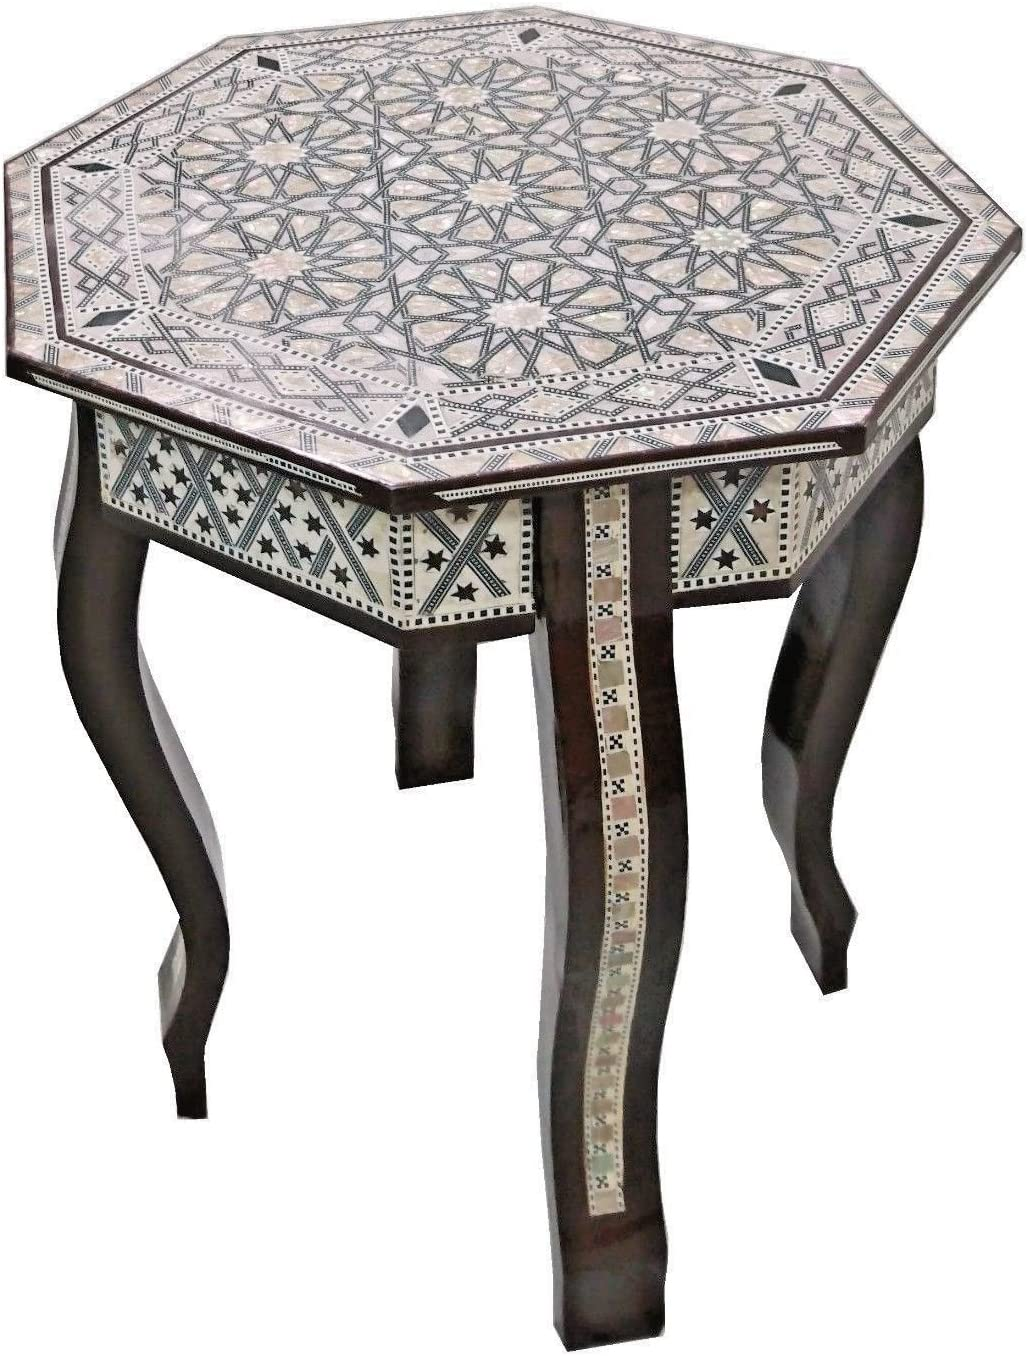 Fashionable W155 Max 86% OFF BR Mother of Pearl Moroccan Wood Table Octagonal Corner Bro